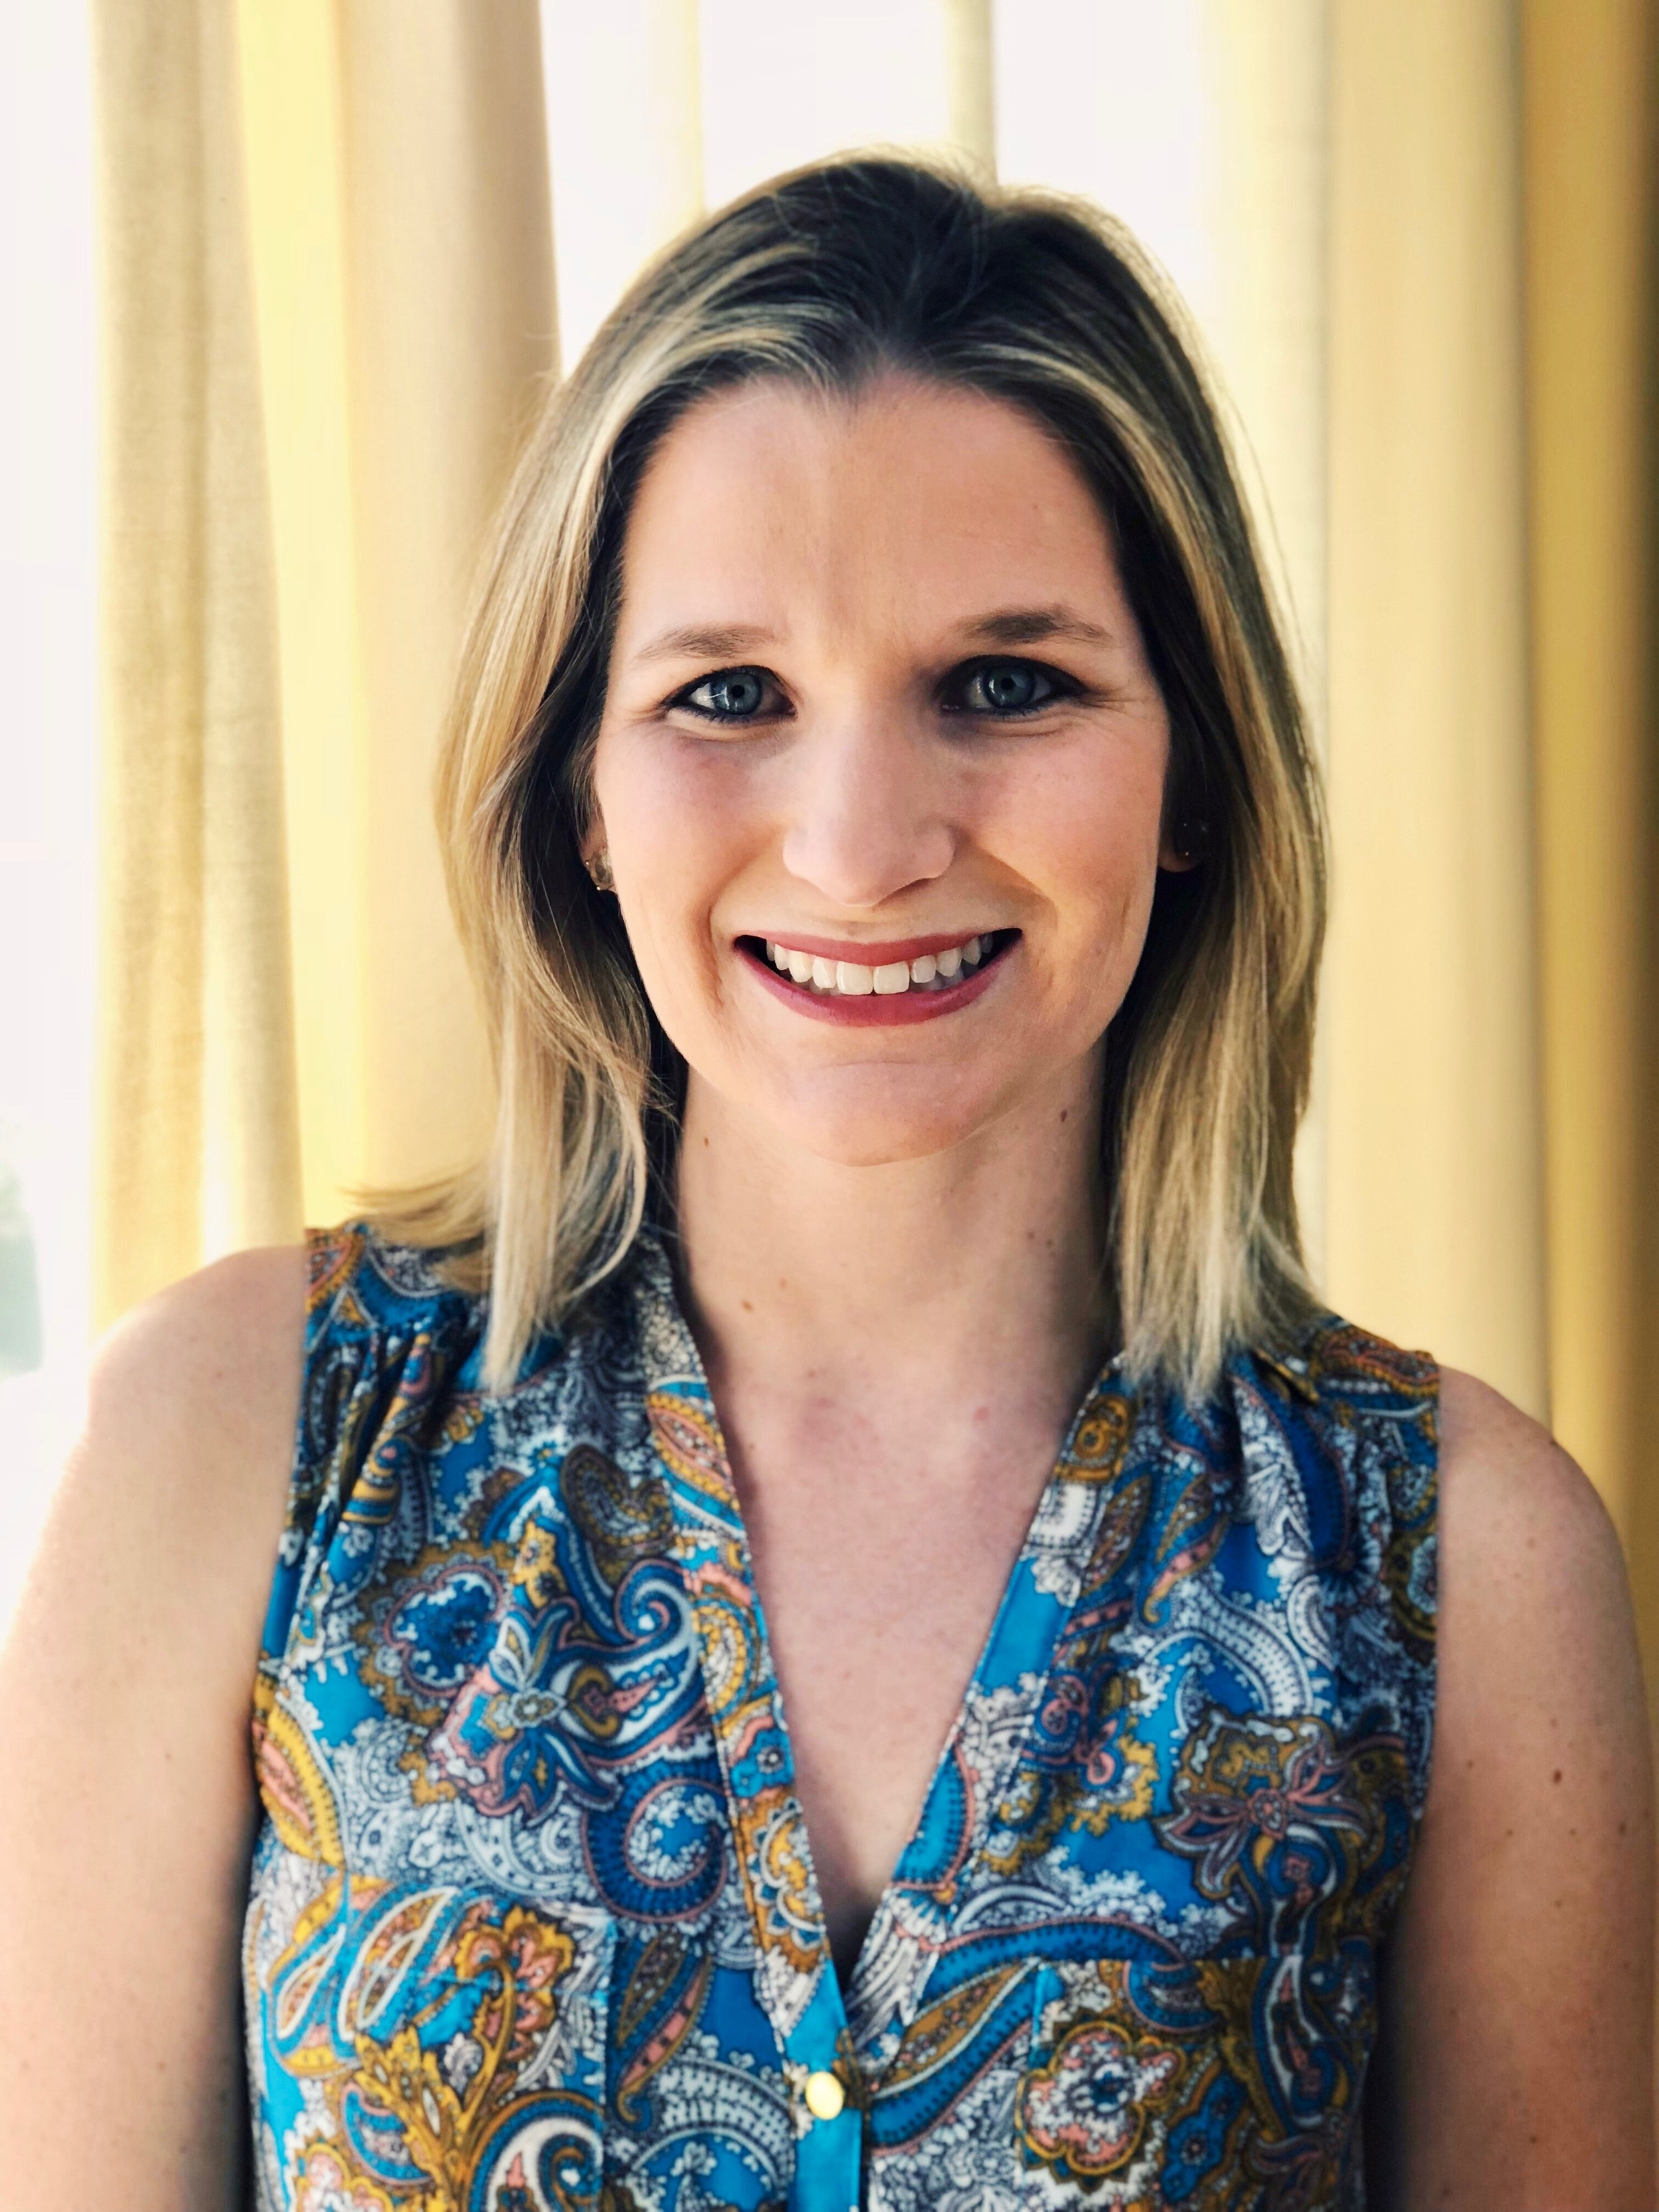 Shannon Gonter, LPCC, Owner and Founder of b.mindful Louisville